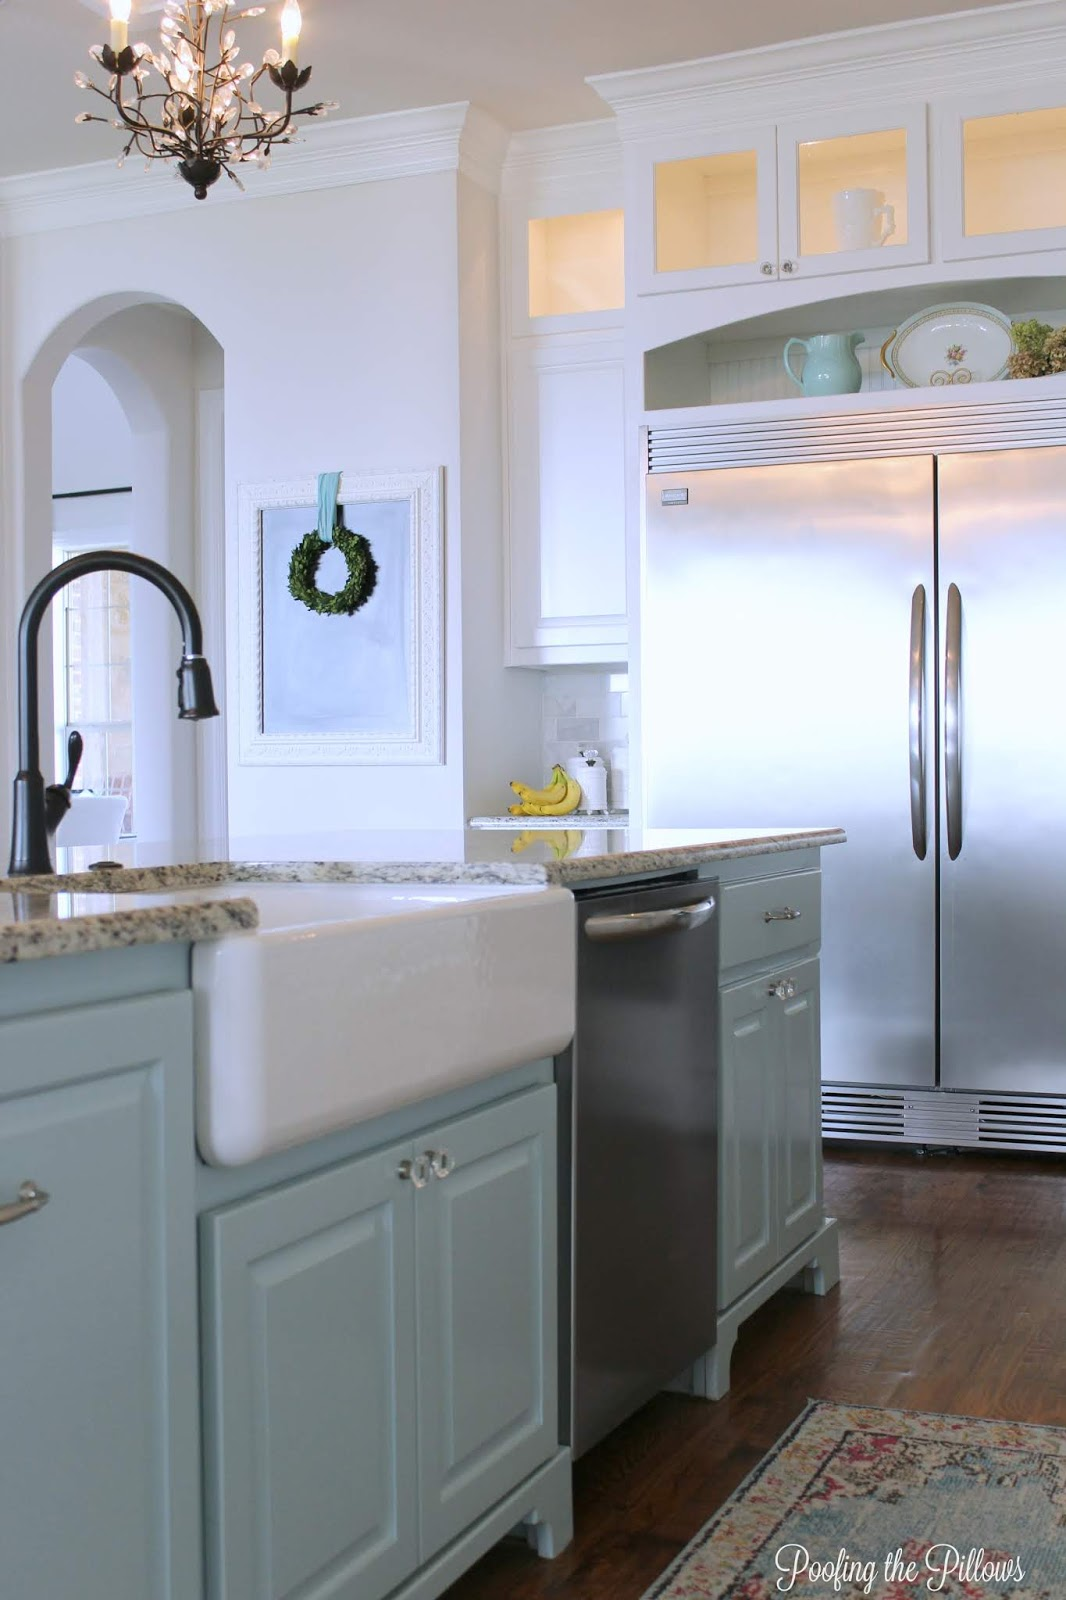 light and bright kitchen with Sherwin Williams Watery on the island.